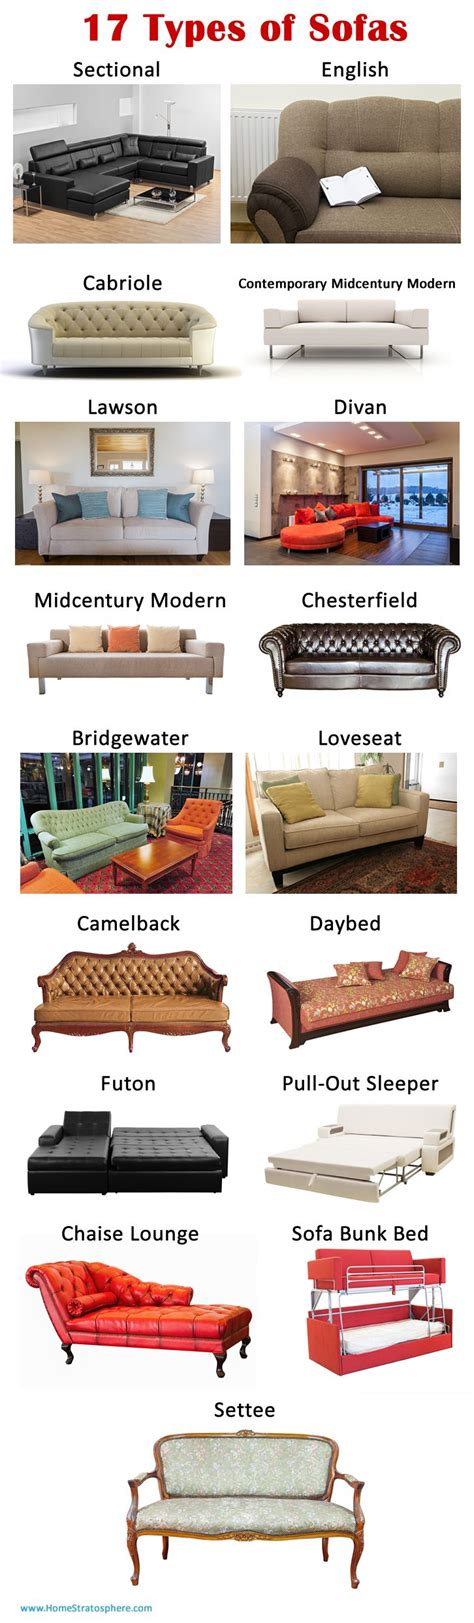 living room furniture names living room furniture names